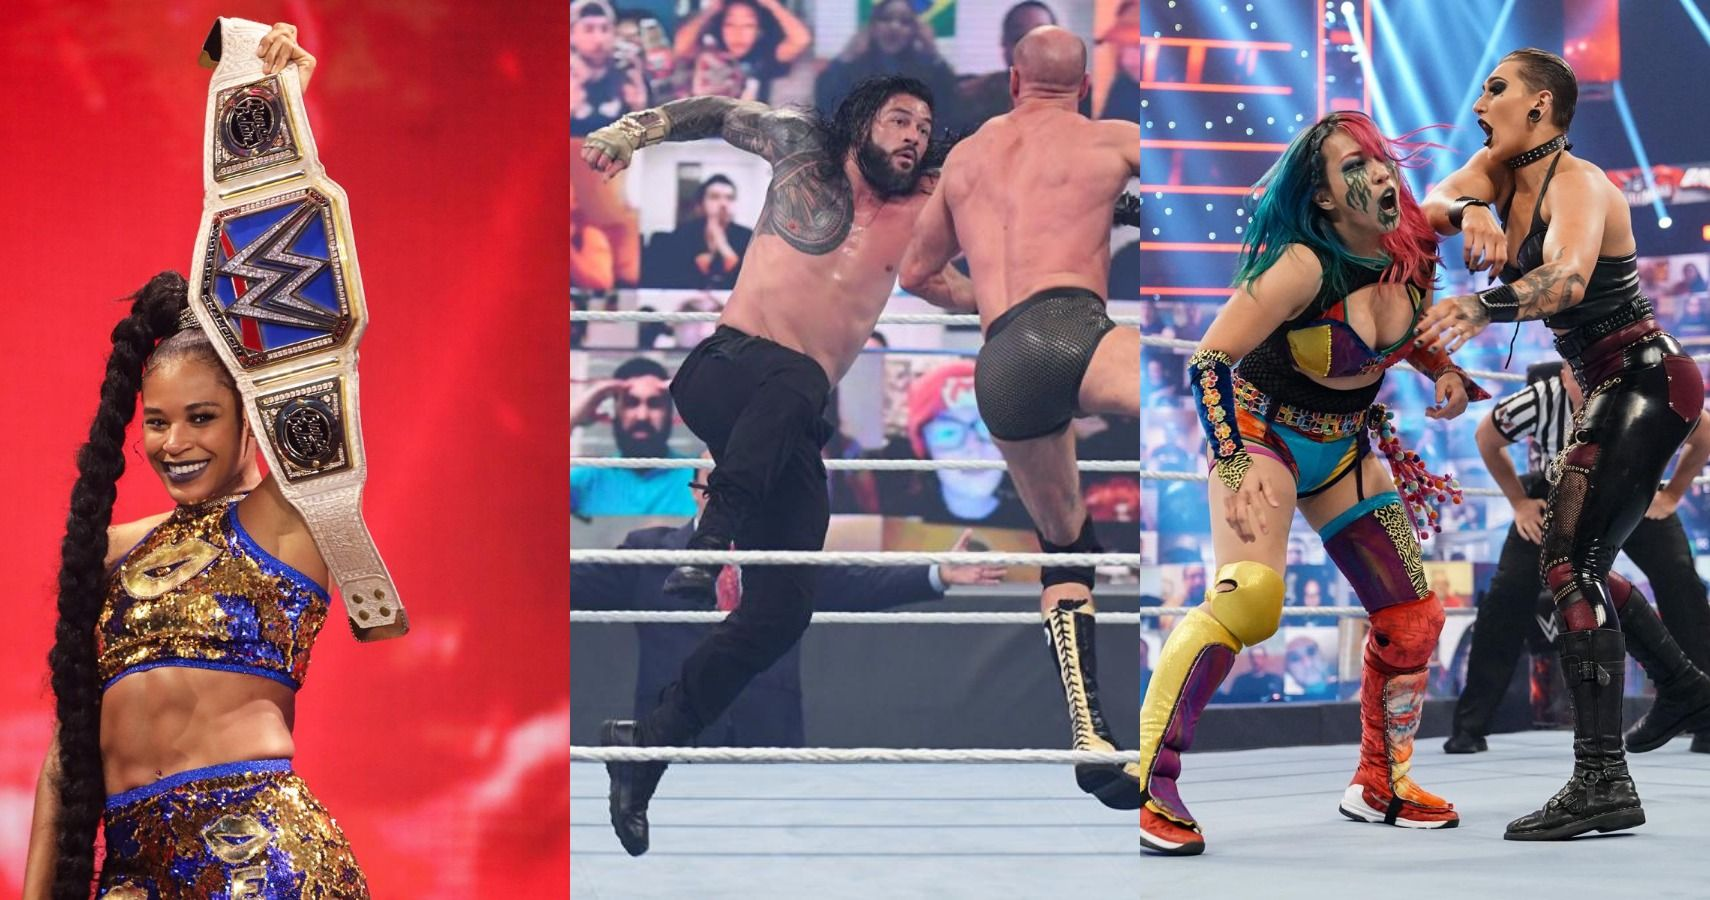 WrestleMania Backlash: 5 Wrestlers Who Stole The Show (& 5 Who Flopped)